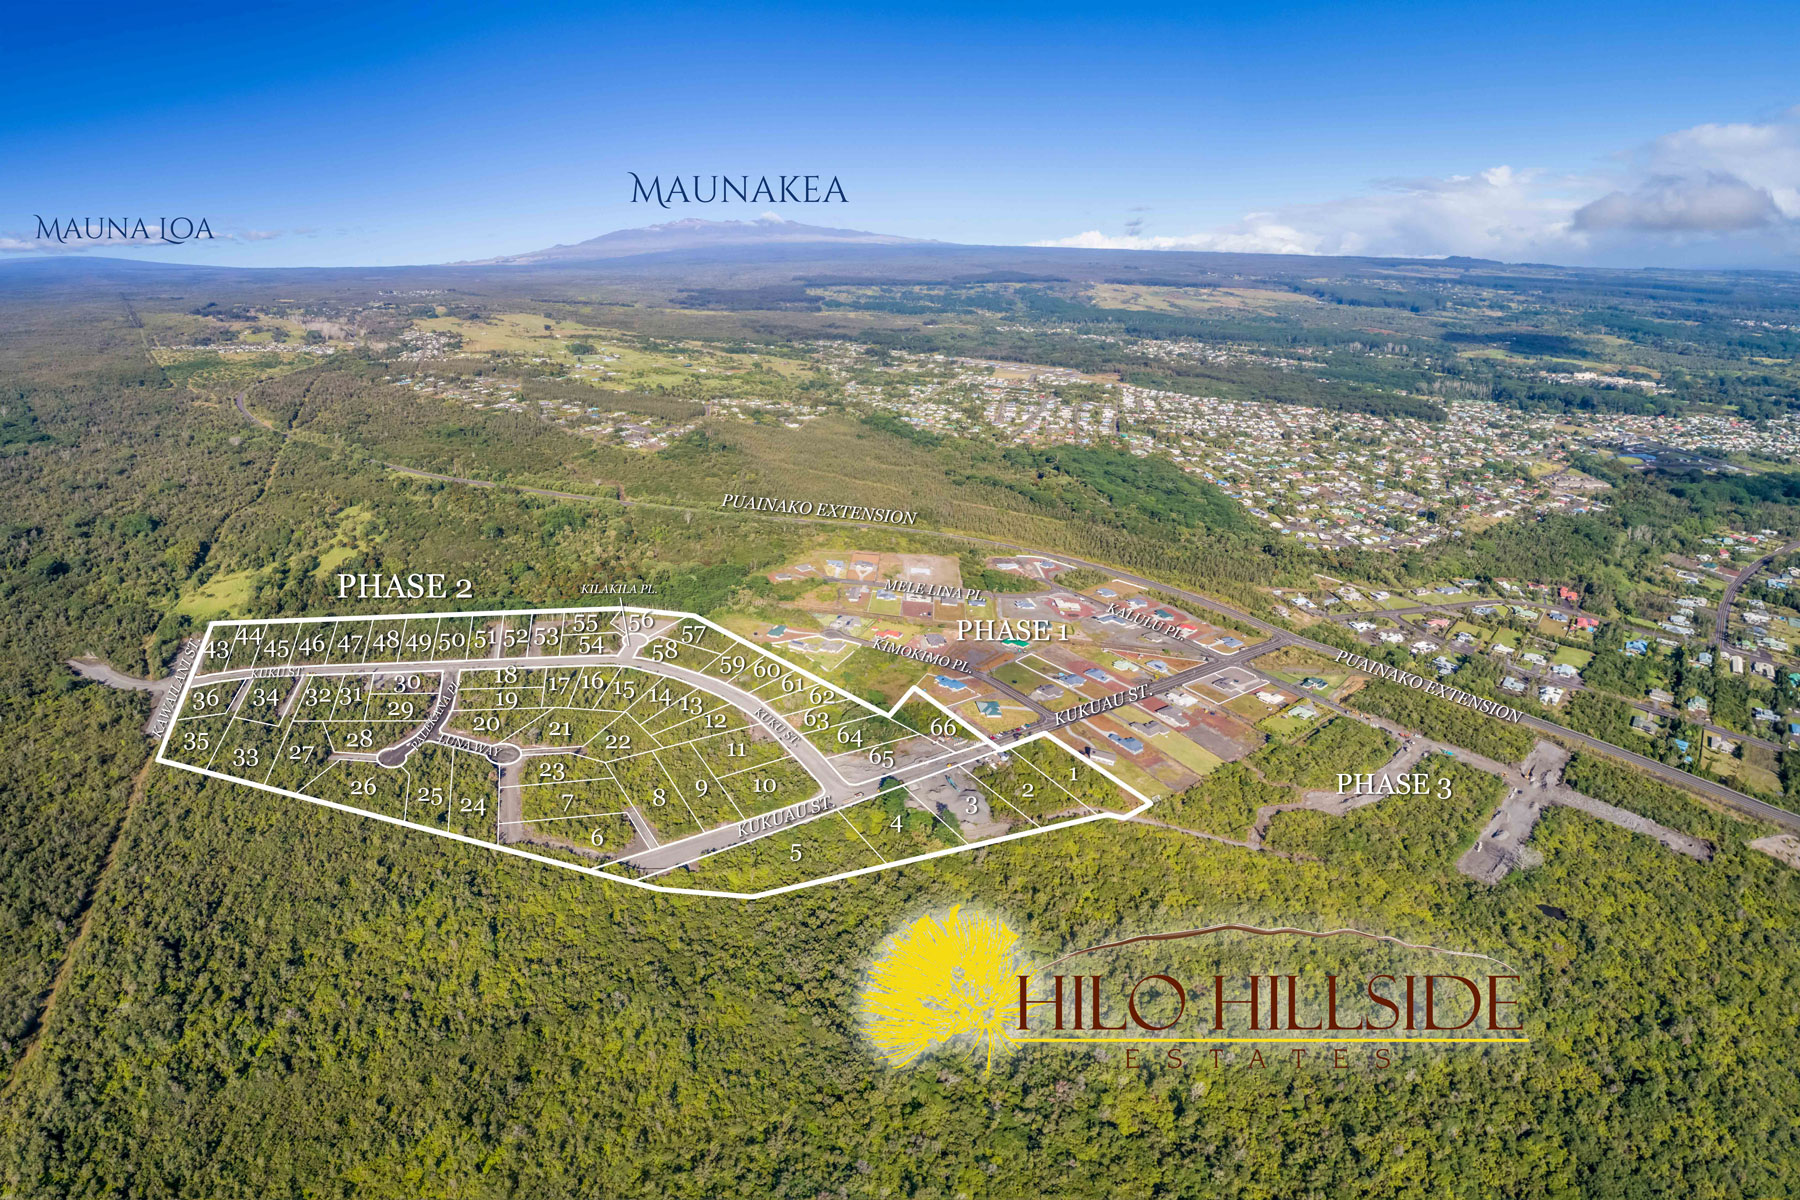 Hilo Hillside Phase 2 11 With Numbers